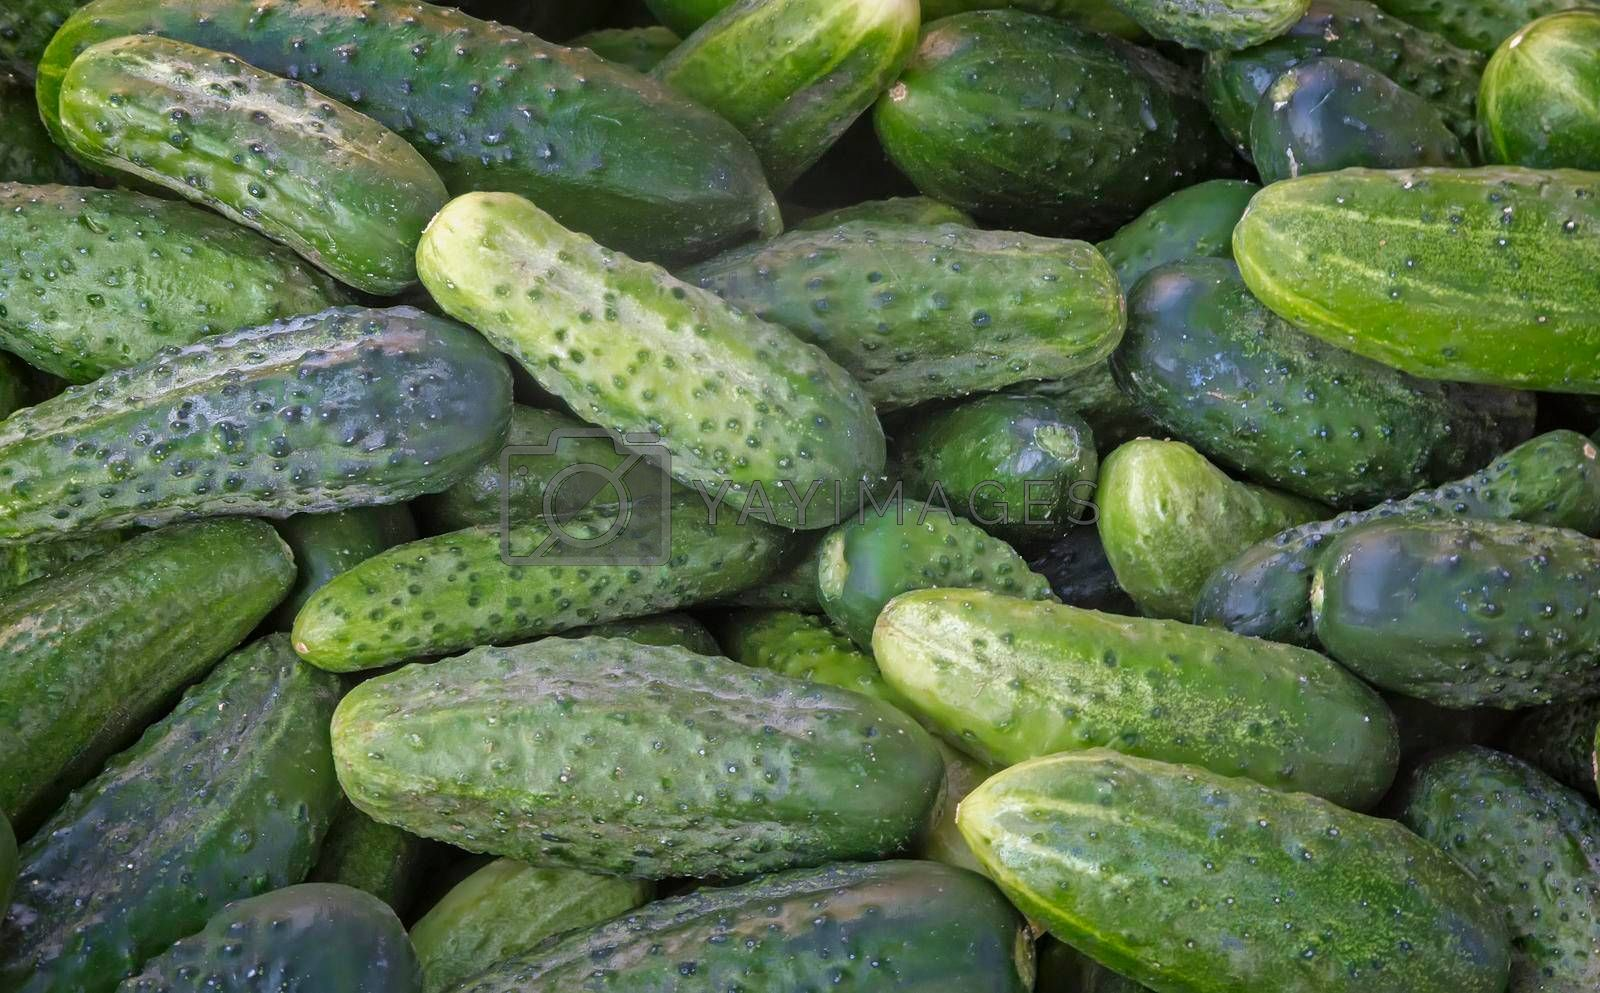 Closeup presented in a large amount of fresh green cucumbers.